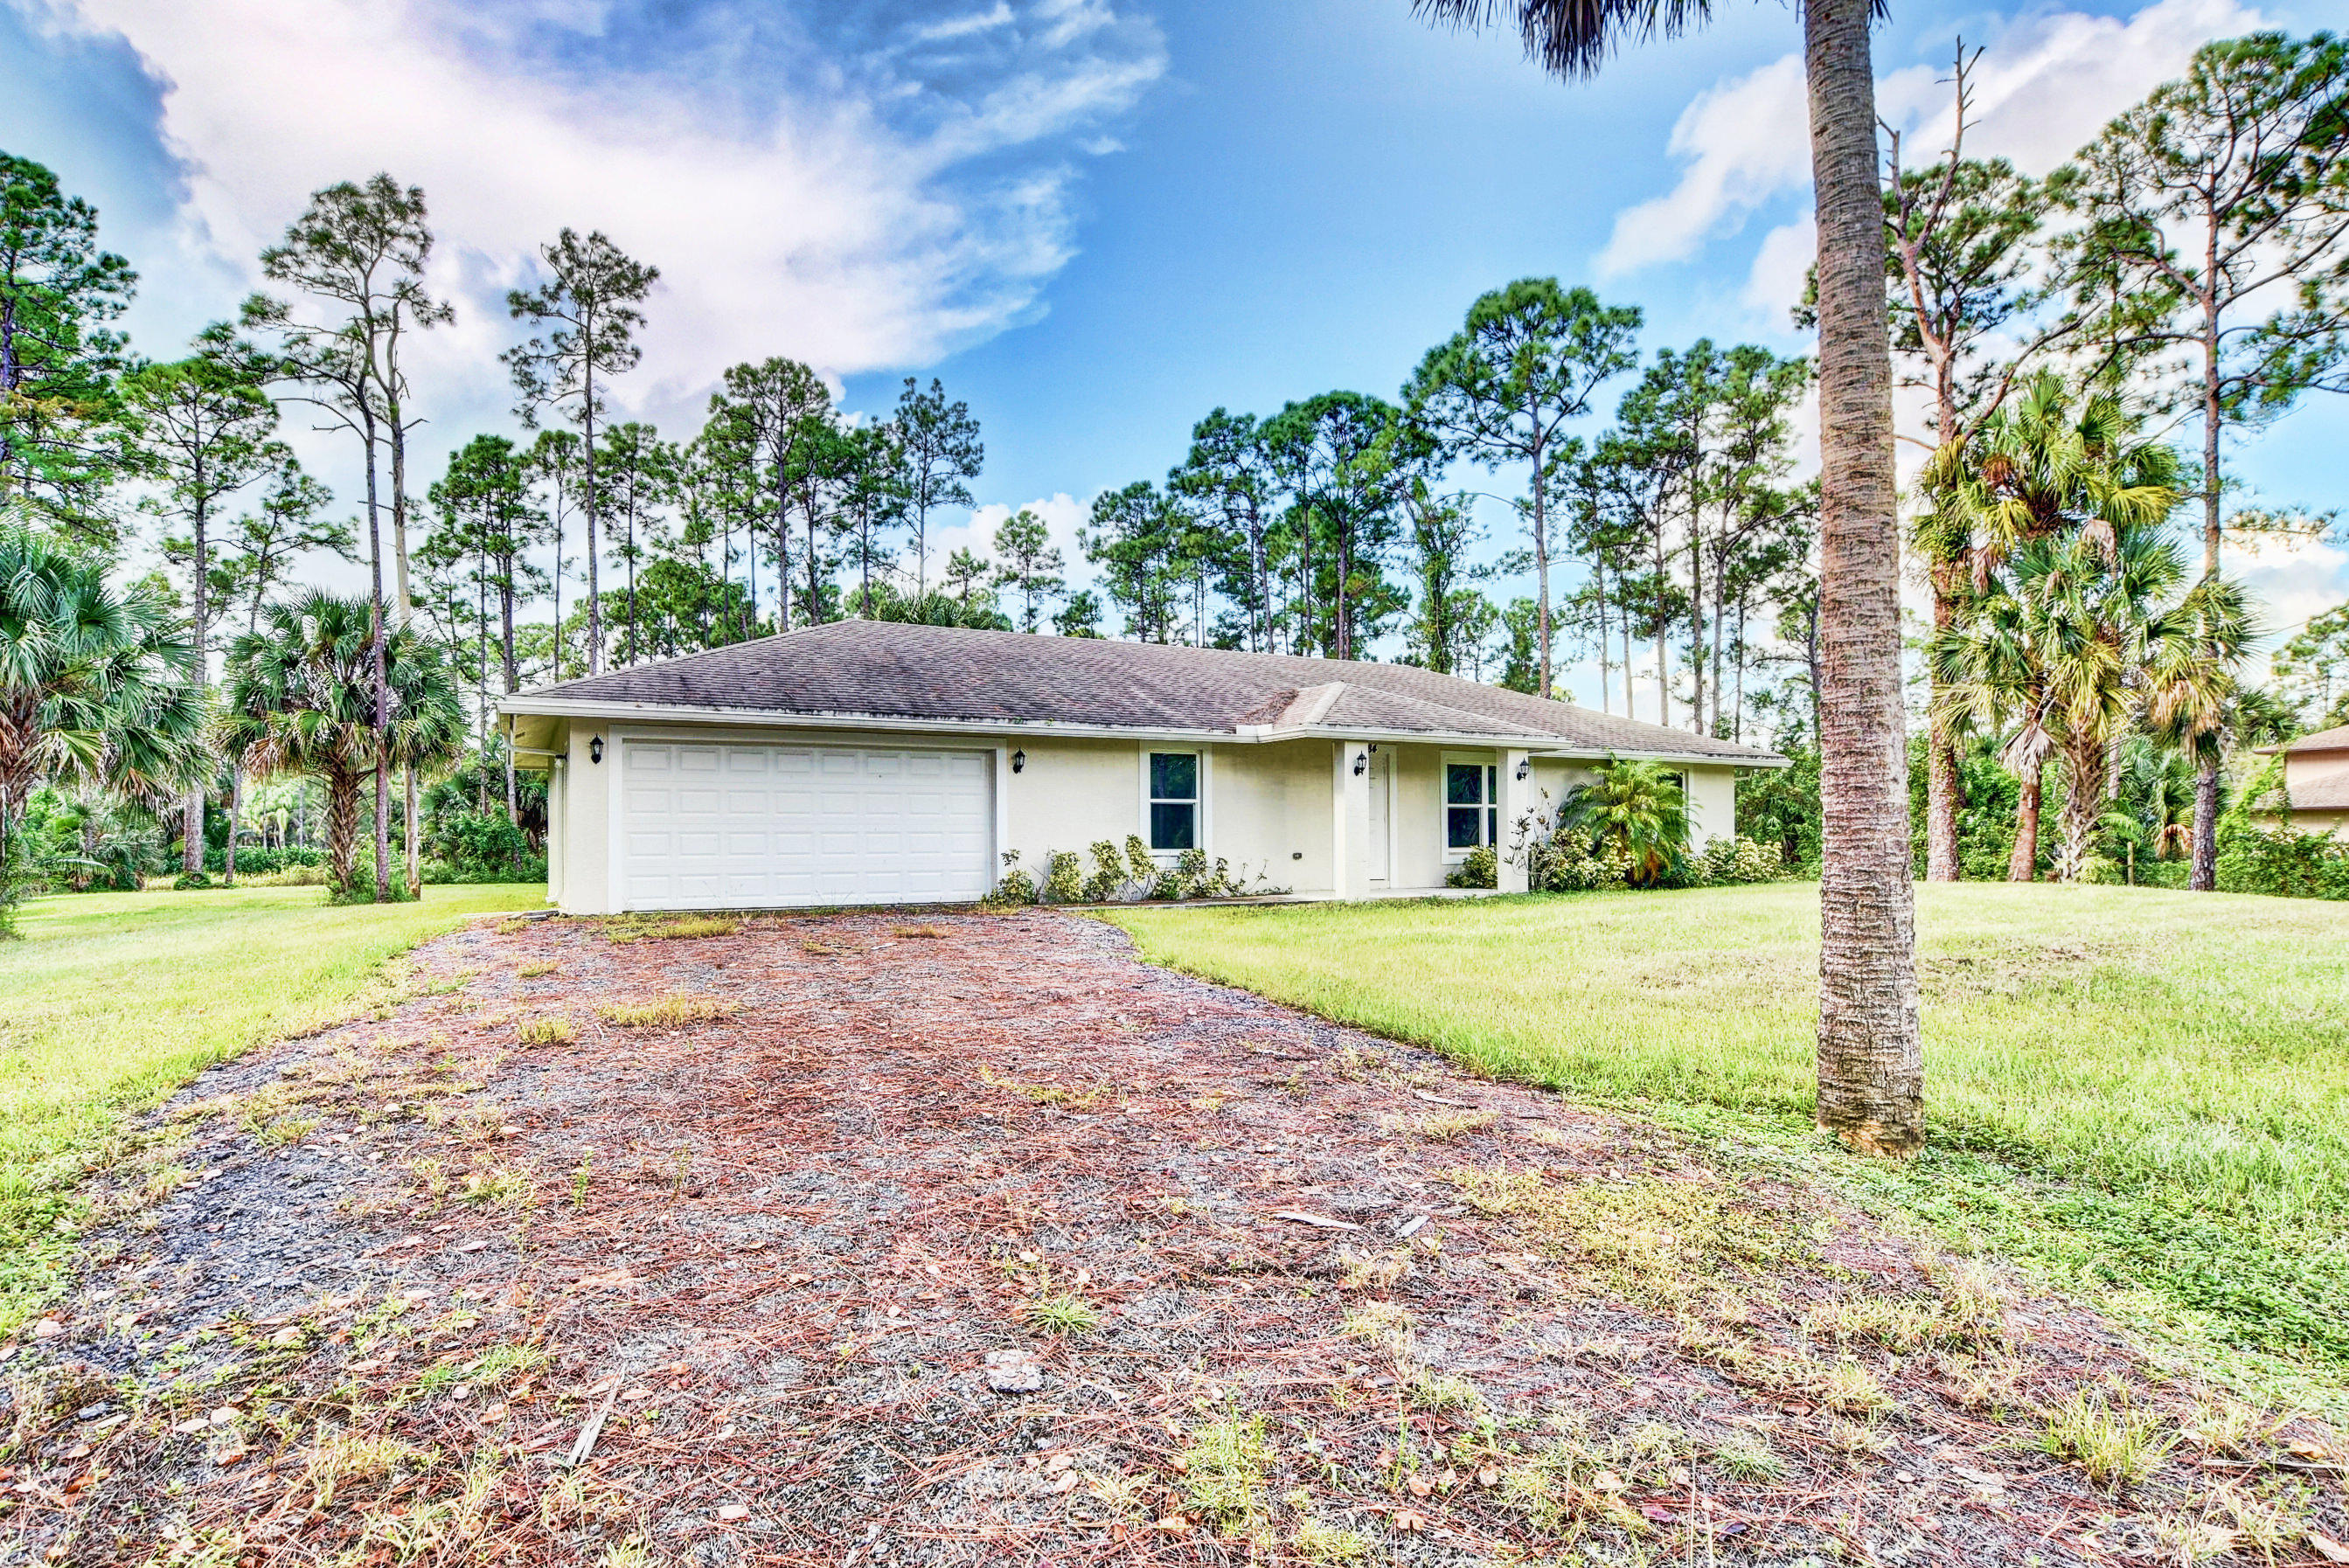 17184 63rd Road N, Loxahatchee in Palm Beach County, FL 33470 Home for Sale